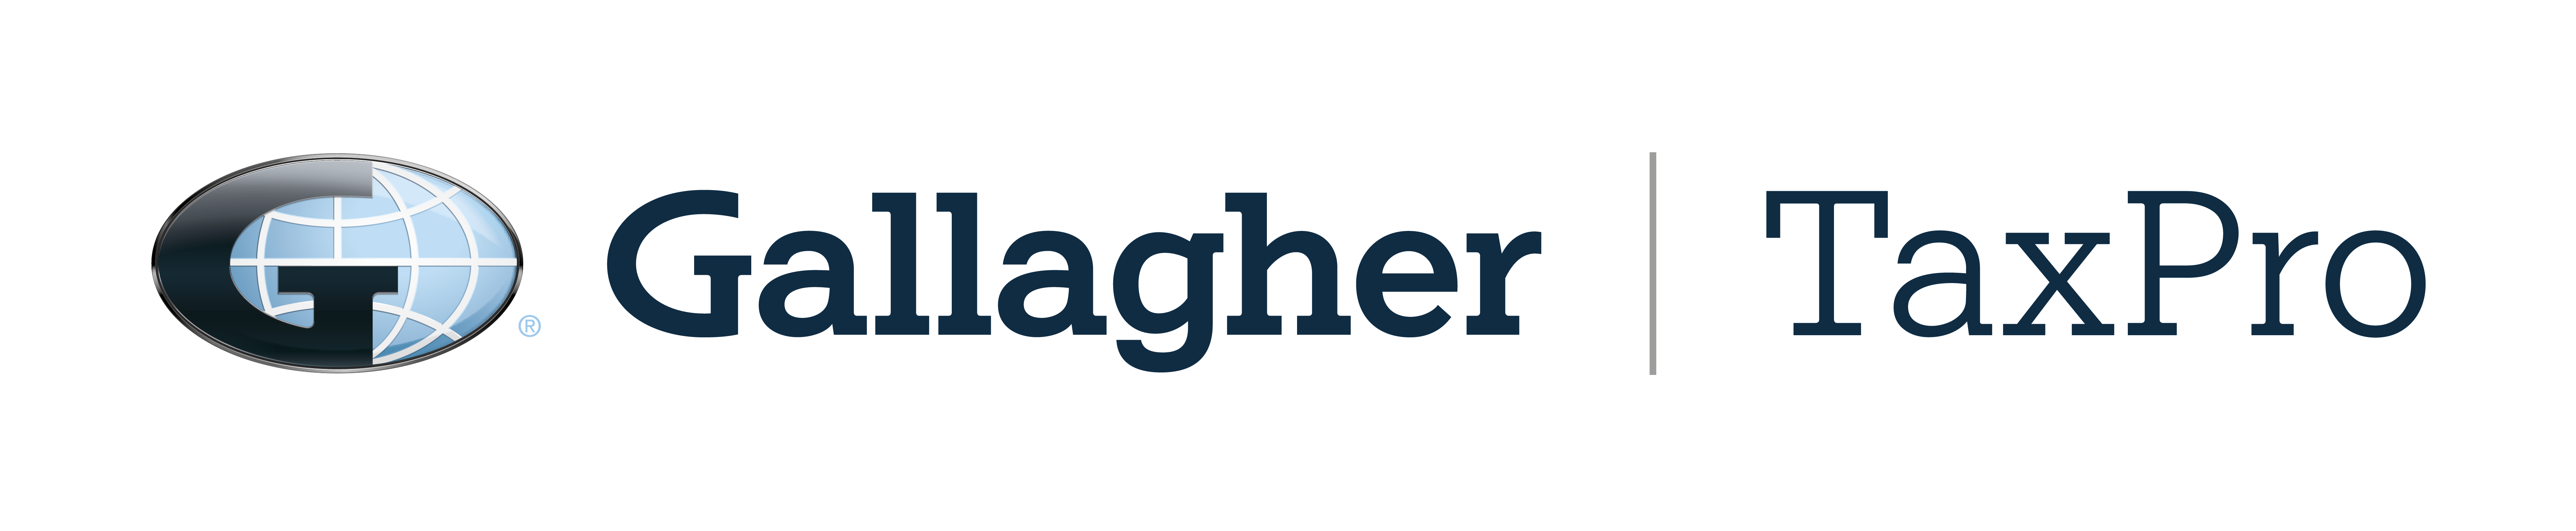 Gallagher TaxPro - Indemnity insurance for Tax Professionals, CIOT and ATT Members, Tax advisers, Tax technicians and Tax Accountants.